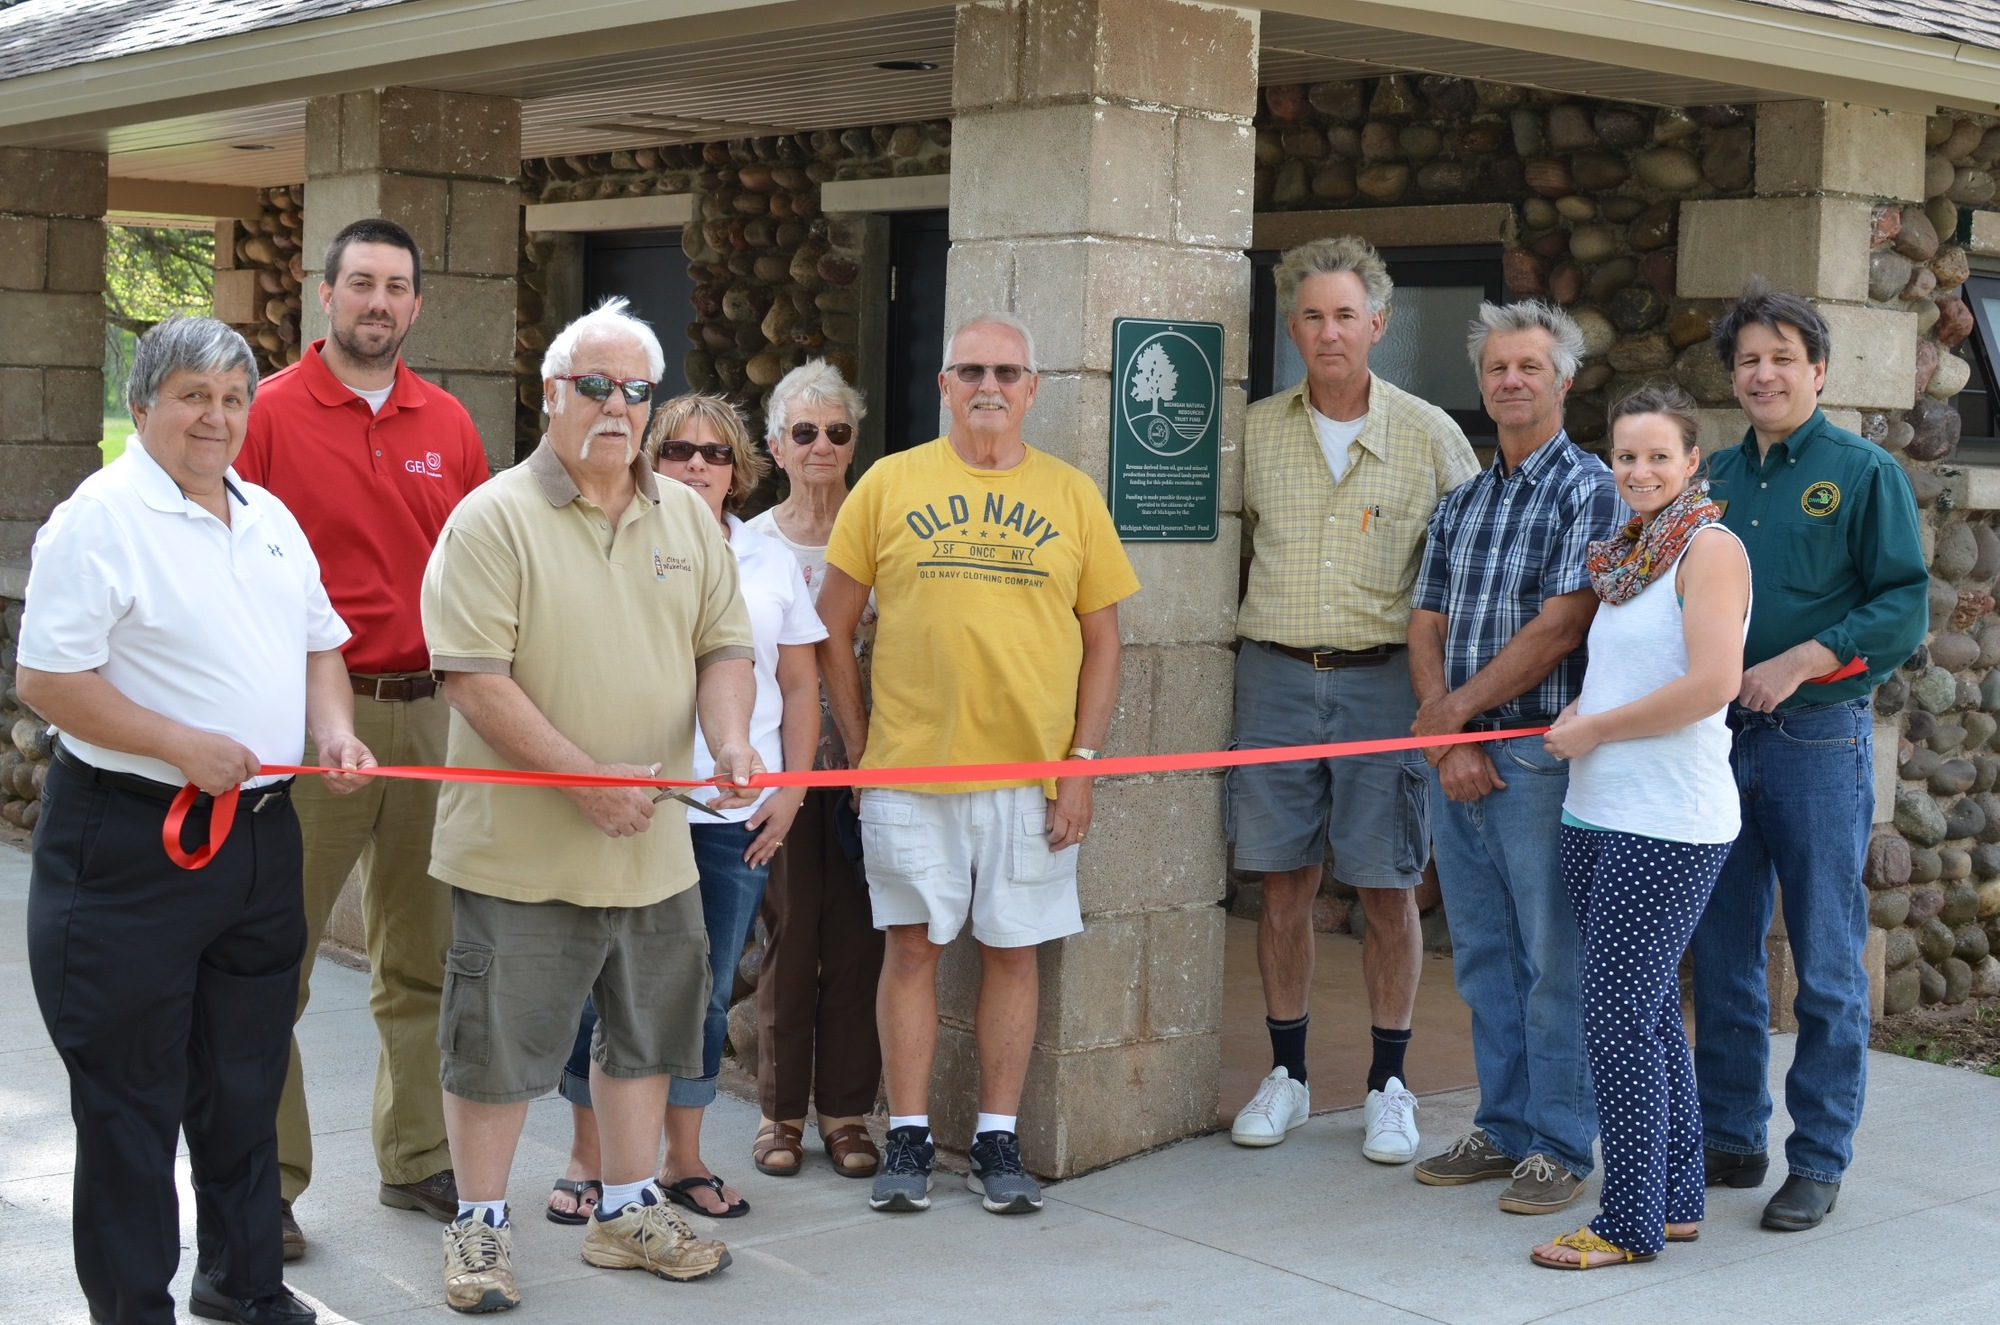 A Michigan Natural Resources Trust Fund grant funded rebuilding and remodeling a park restroom at Eddy Park on Sunday Lake in the city of Wakefield.